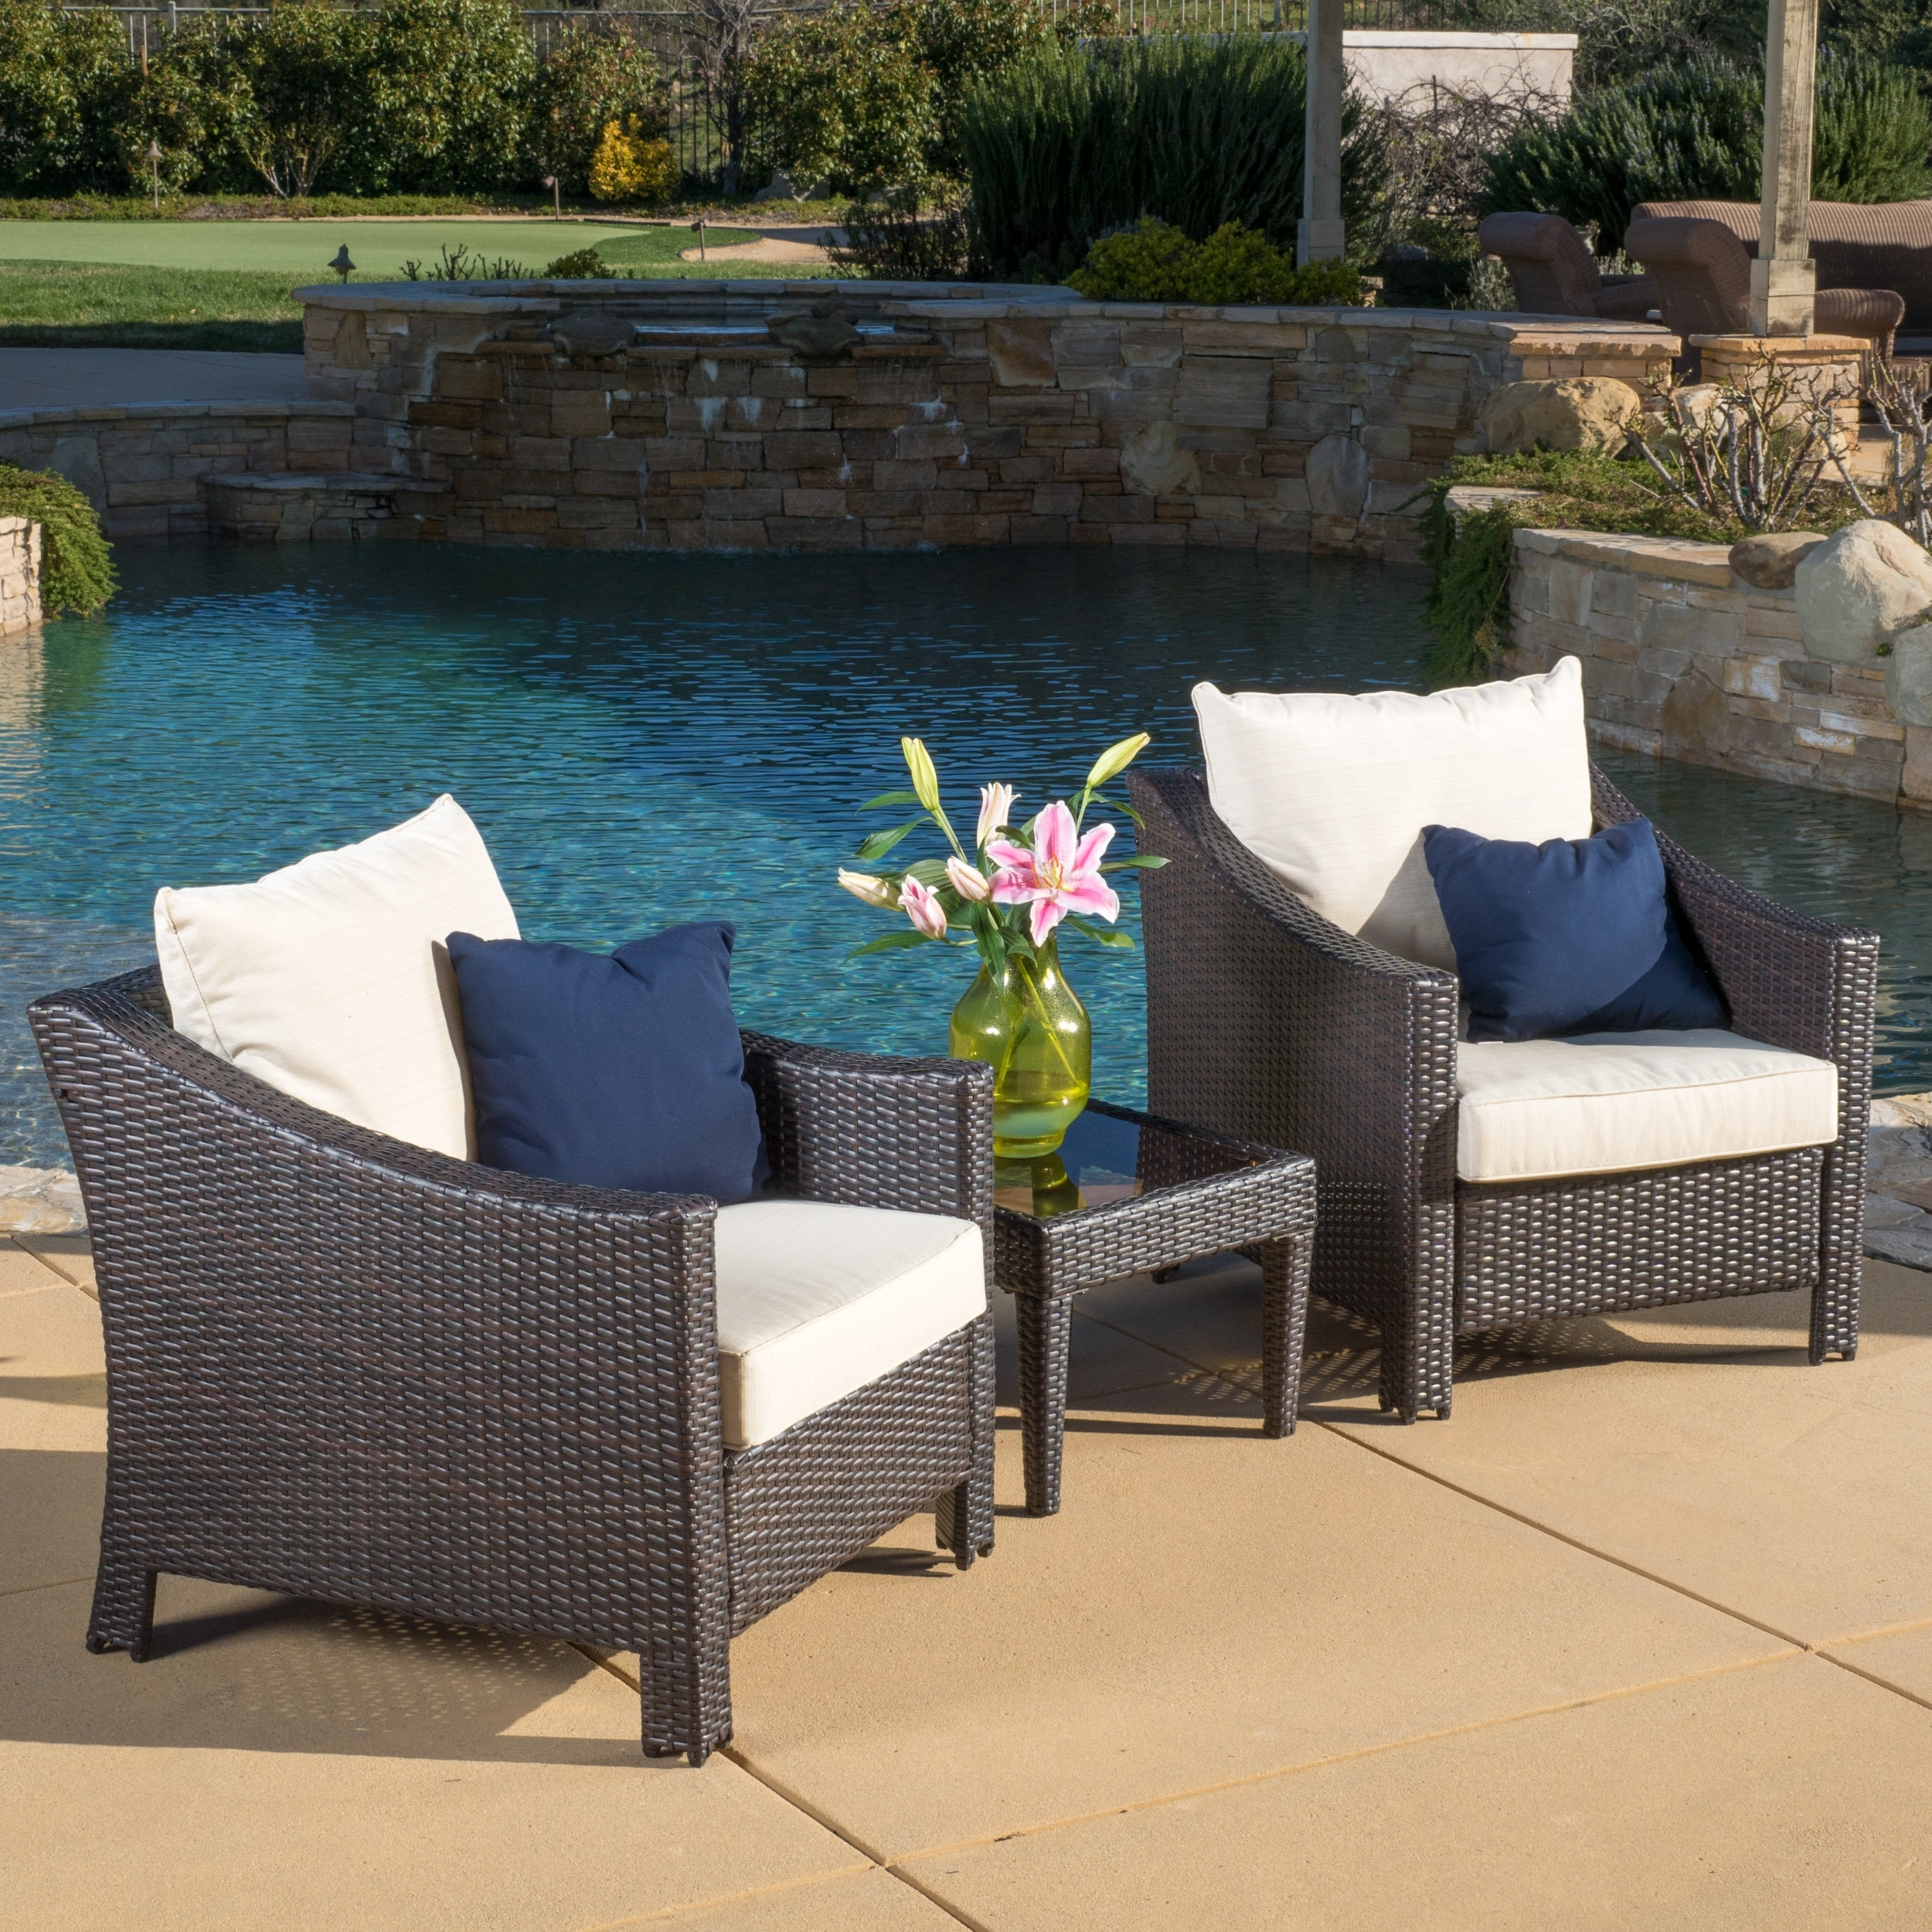 Patio Conversation Sets For Small Spaces Pertaining To Well Known Discount Sling Patio Furniture 4 Piece Wicker Chat Set In Brown (View 11 of 20)